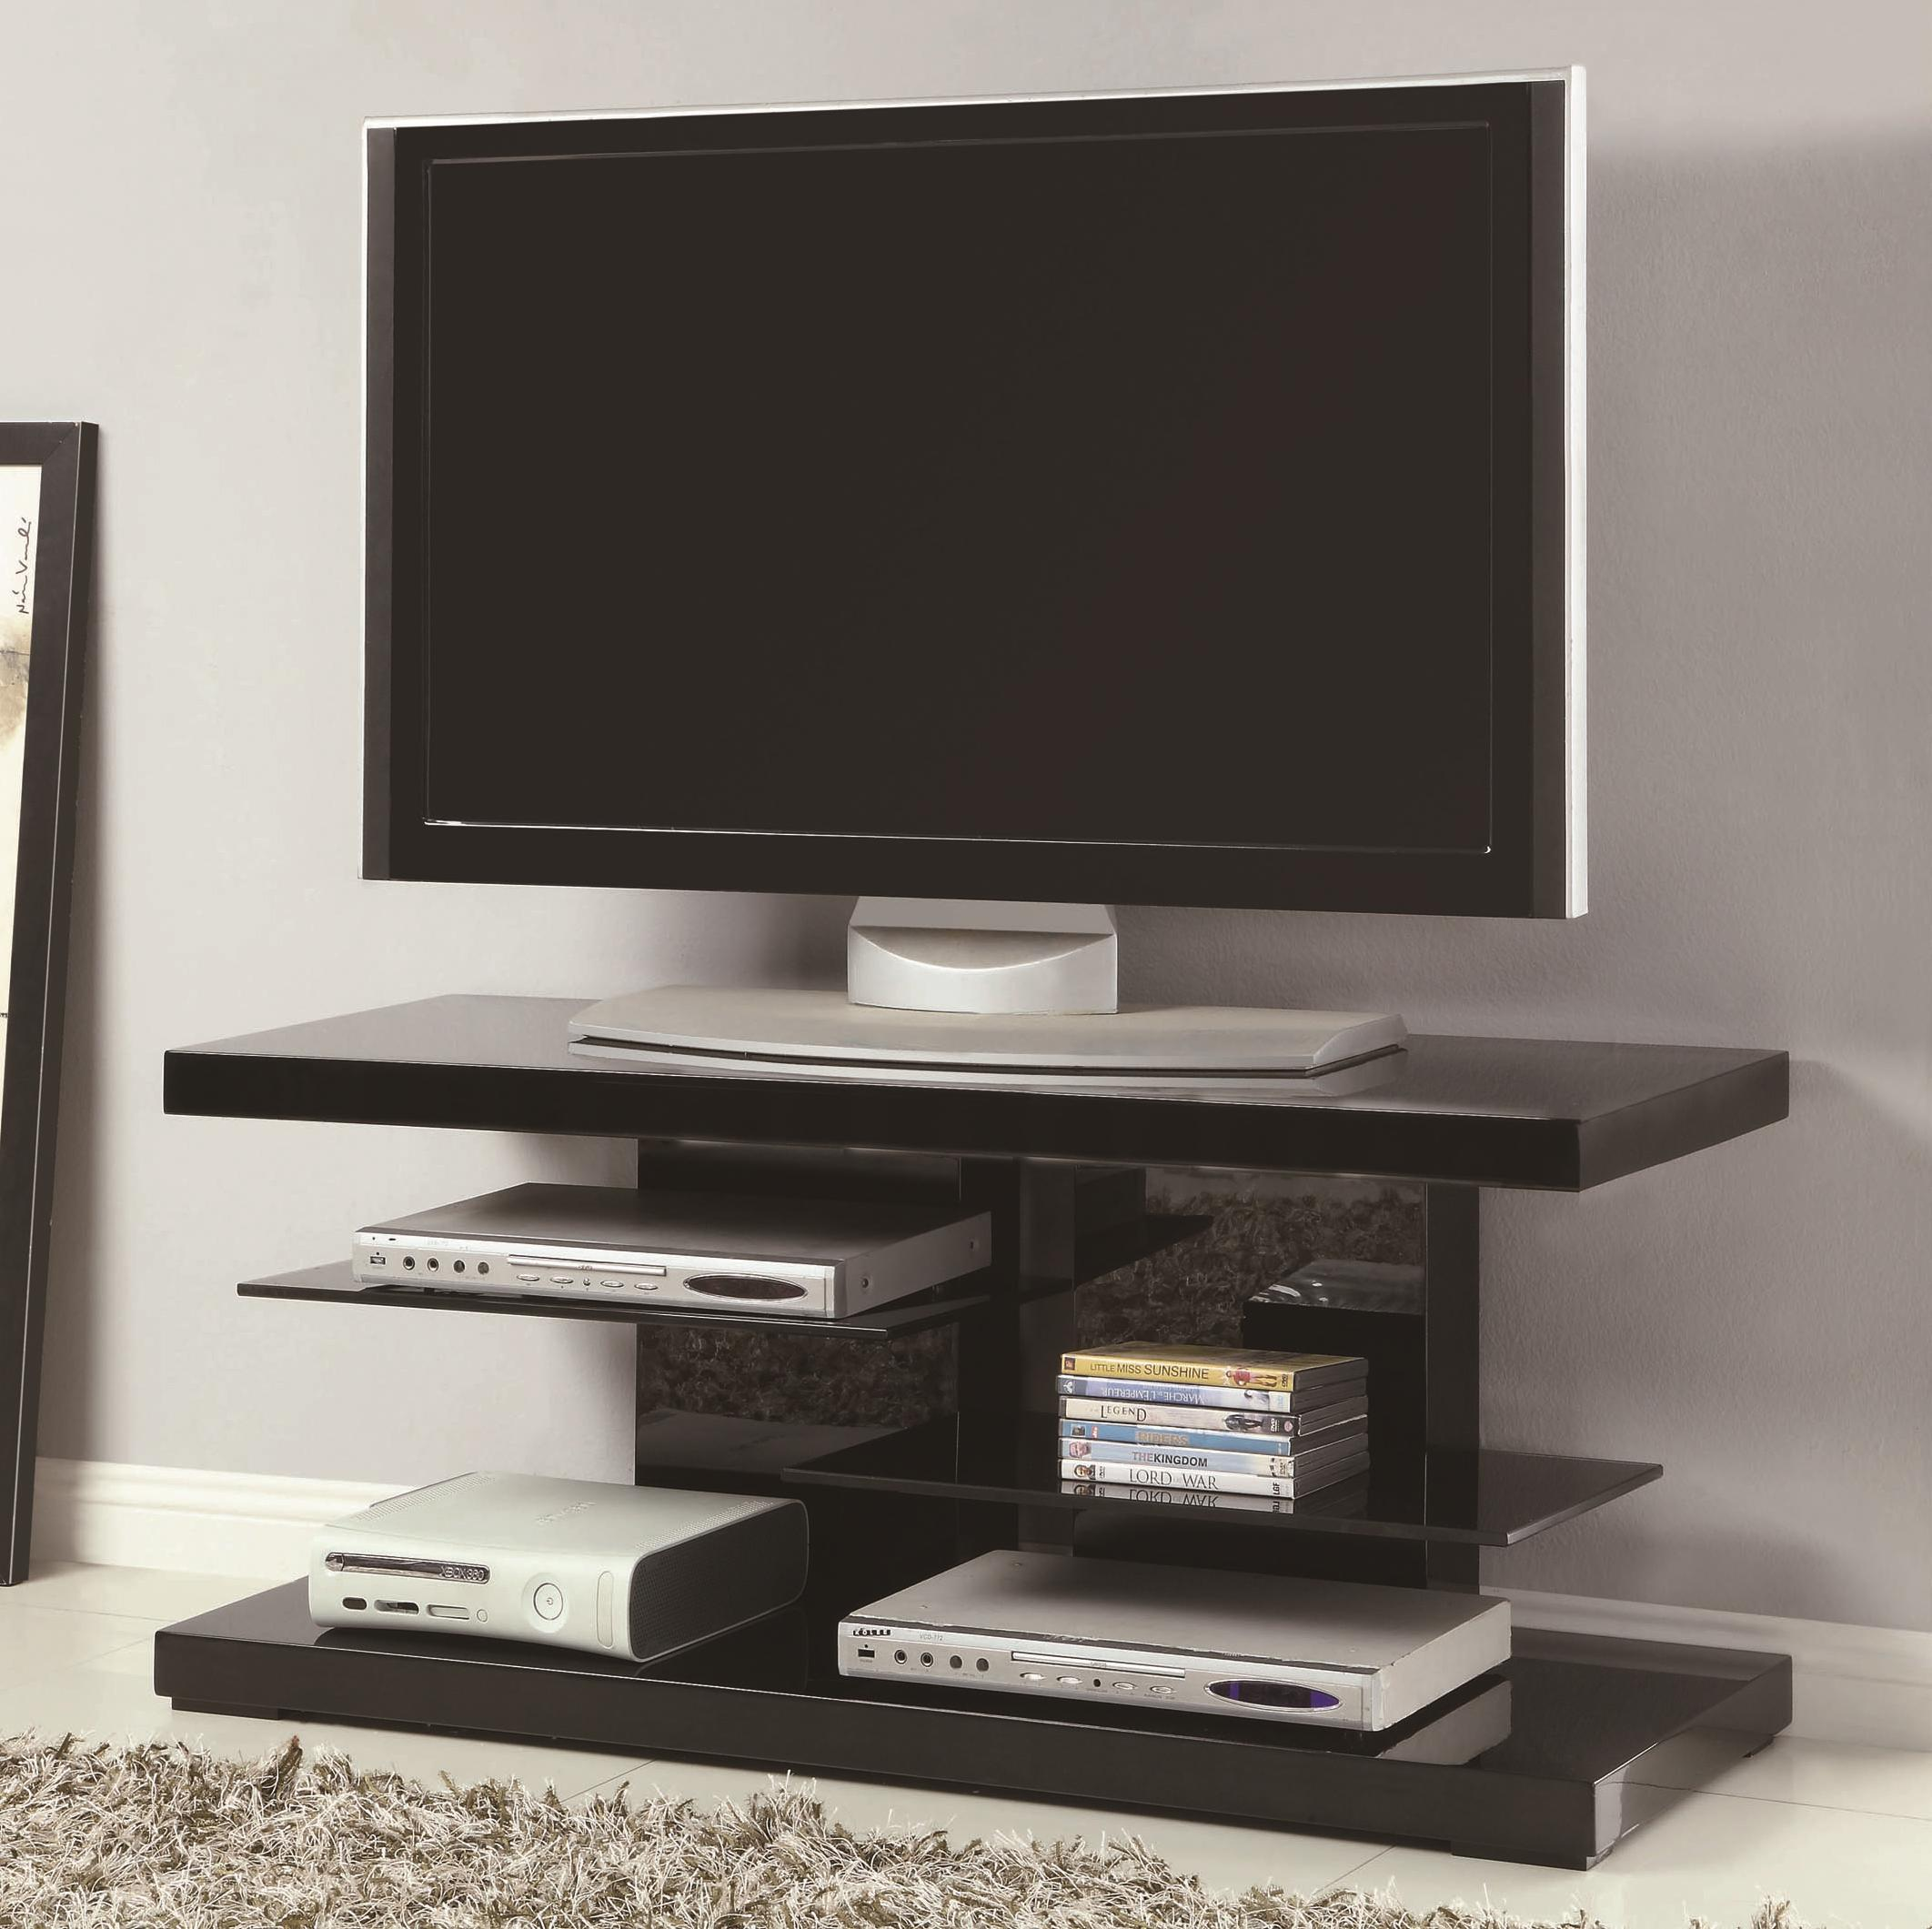 Tv stands modern tv stand with alternating glass shelves, black